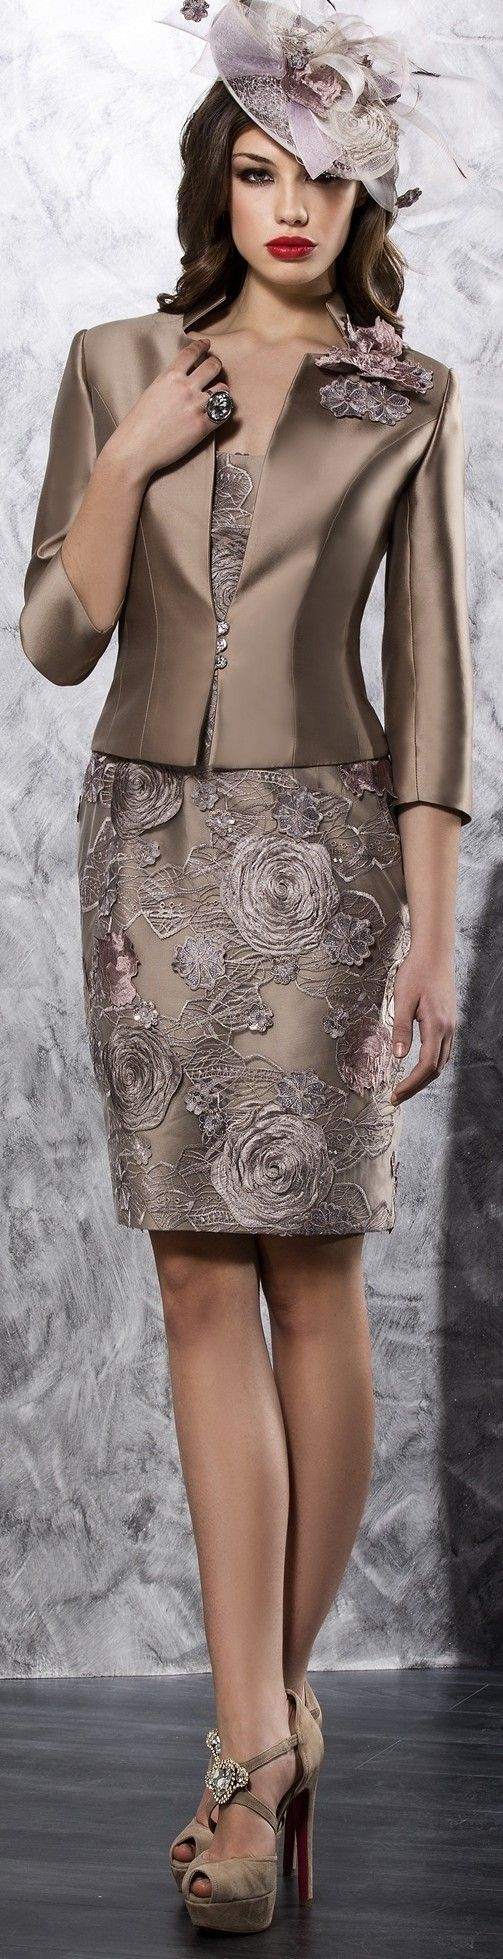 This short mother of the bride dress has embroidery embellishments on a short skirt.  The 3/4 sleeve jacket completes the ensemble.  Our #fashion firm provides custom mother of the bride attire for women all over the globe.  We can sketch the design or work from any picture you have.  See other mother of the bride dresses to work from at http://www.dariuscordell.com/product-category/mother-of-the-bride-dresses/: